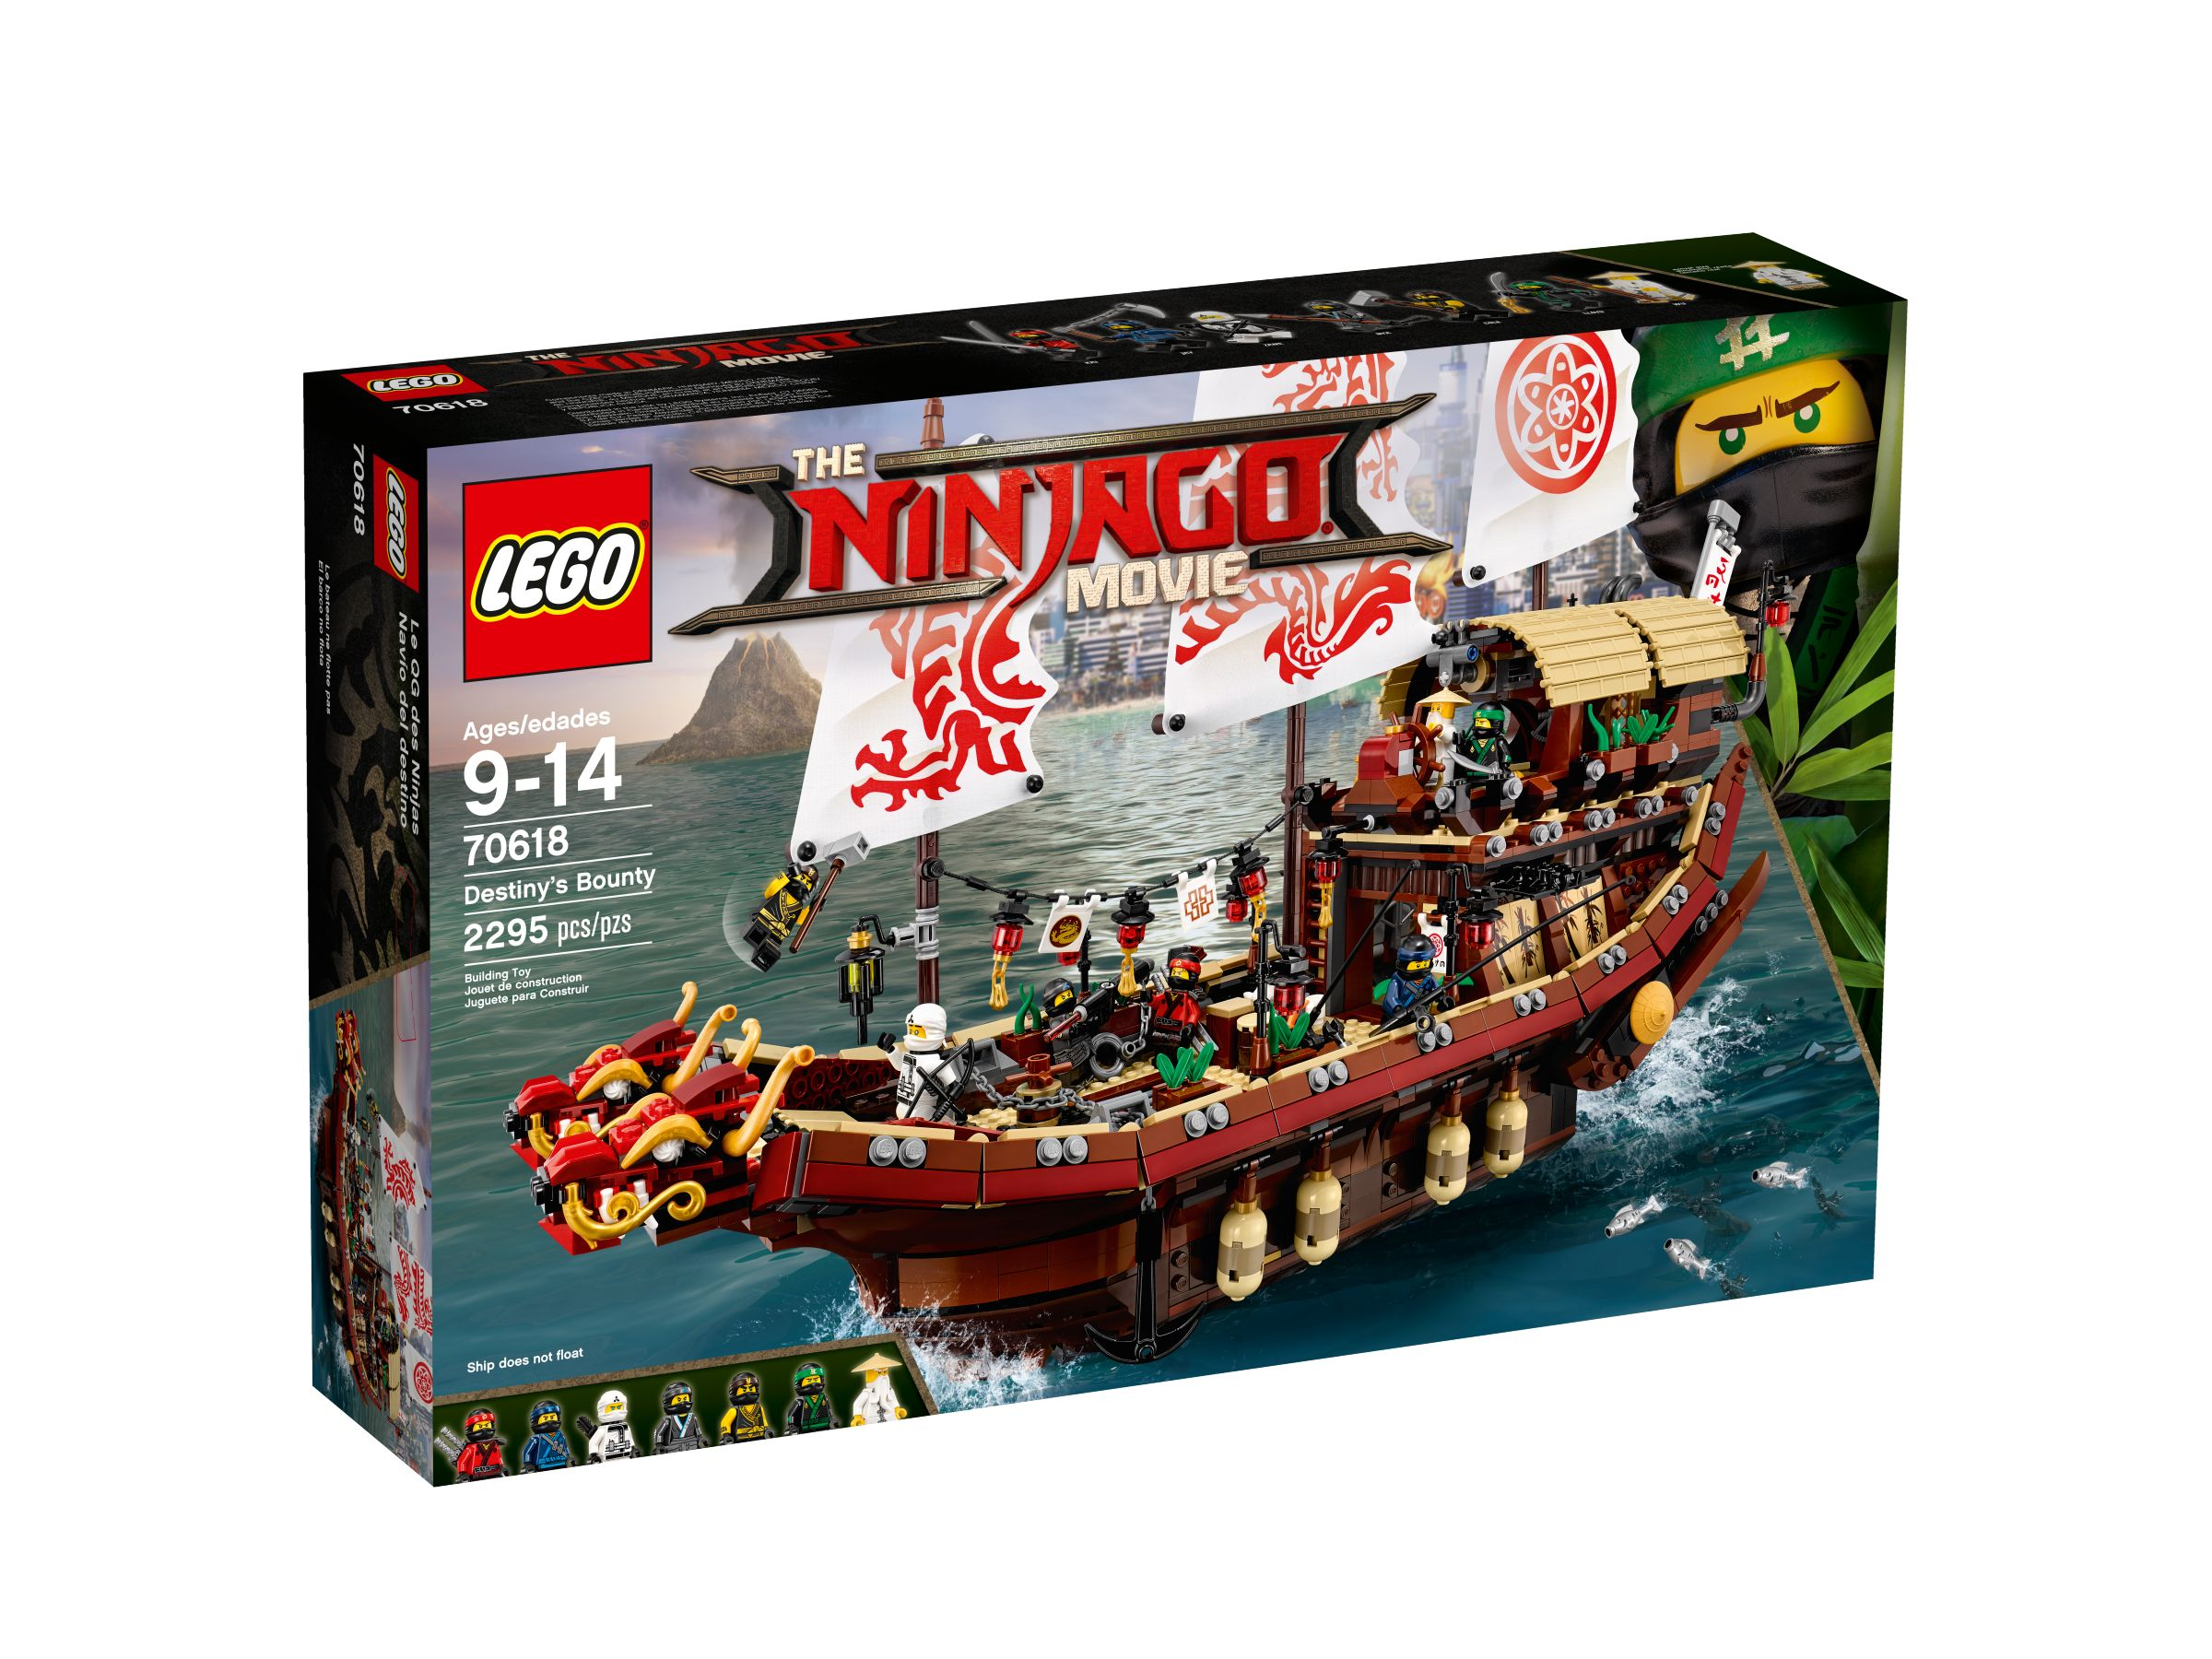 LEGO The LEGO Ninjago Movie 70618 Ninja-Flugsegler LEGO_70618_alt1.jpg